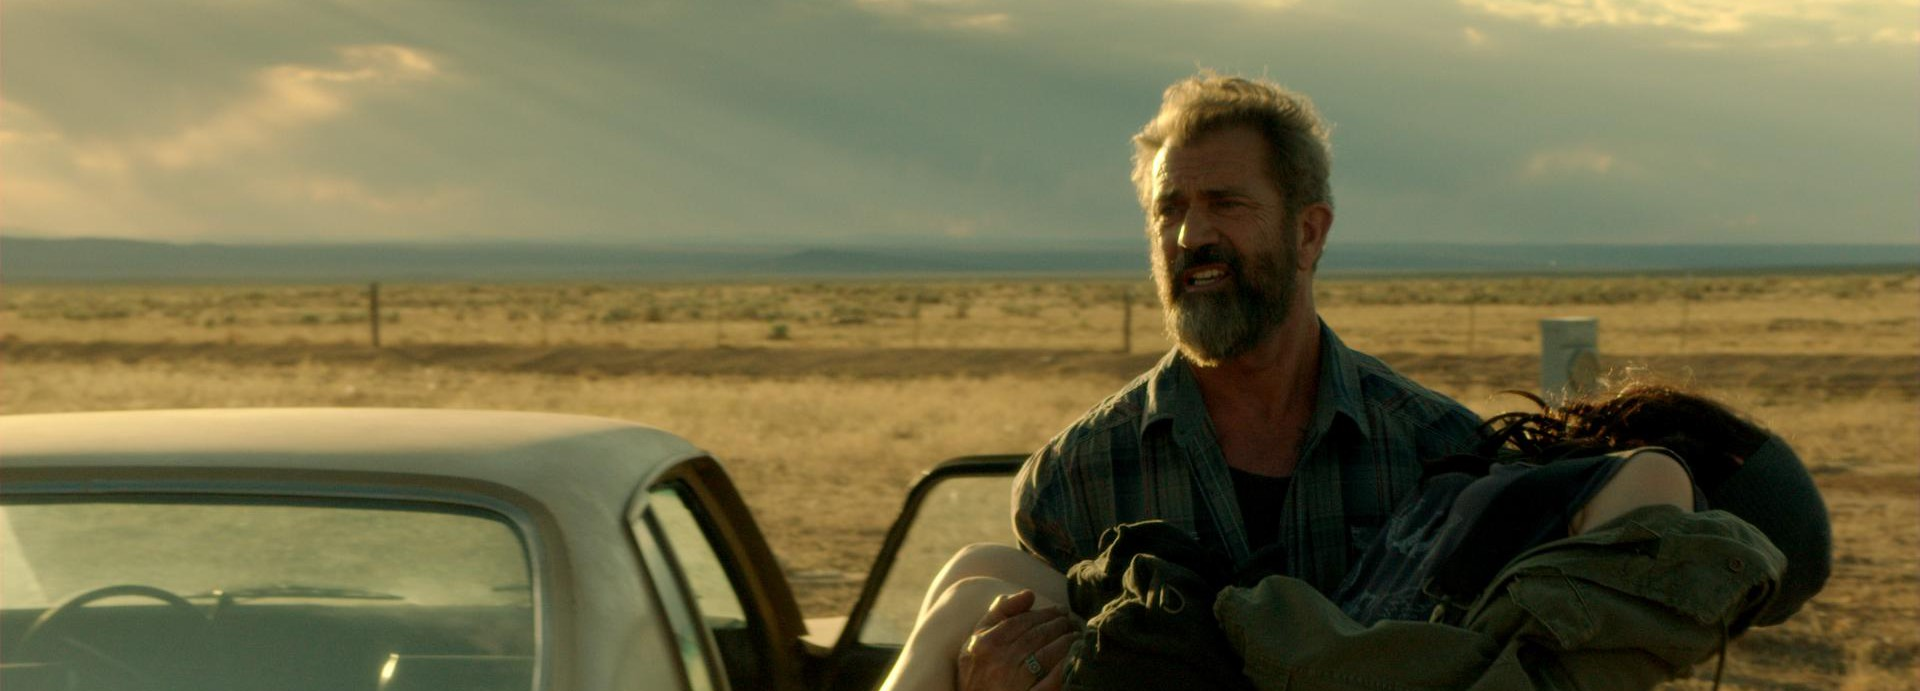 Wild Bunch - BLOOD FATHER